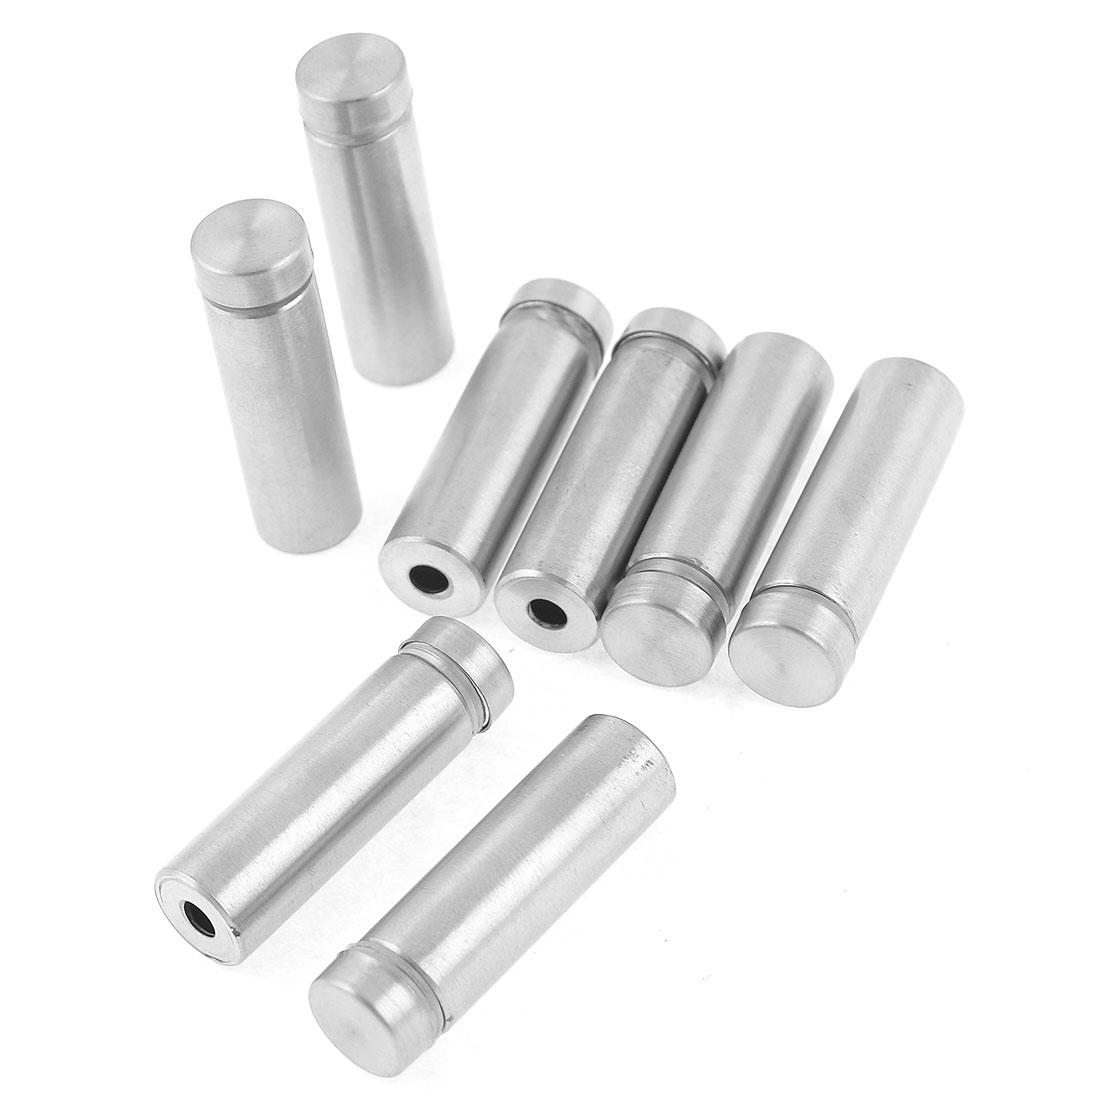 8 Pcs Silver Tone Stainless Steel 12 x 41mm Standoff Hardware for Glass